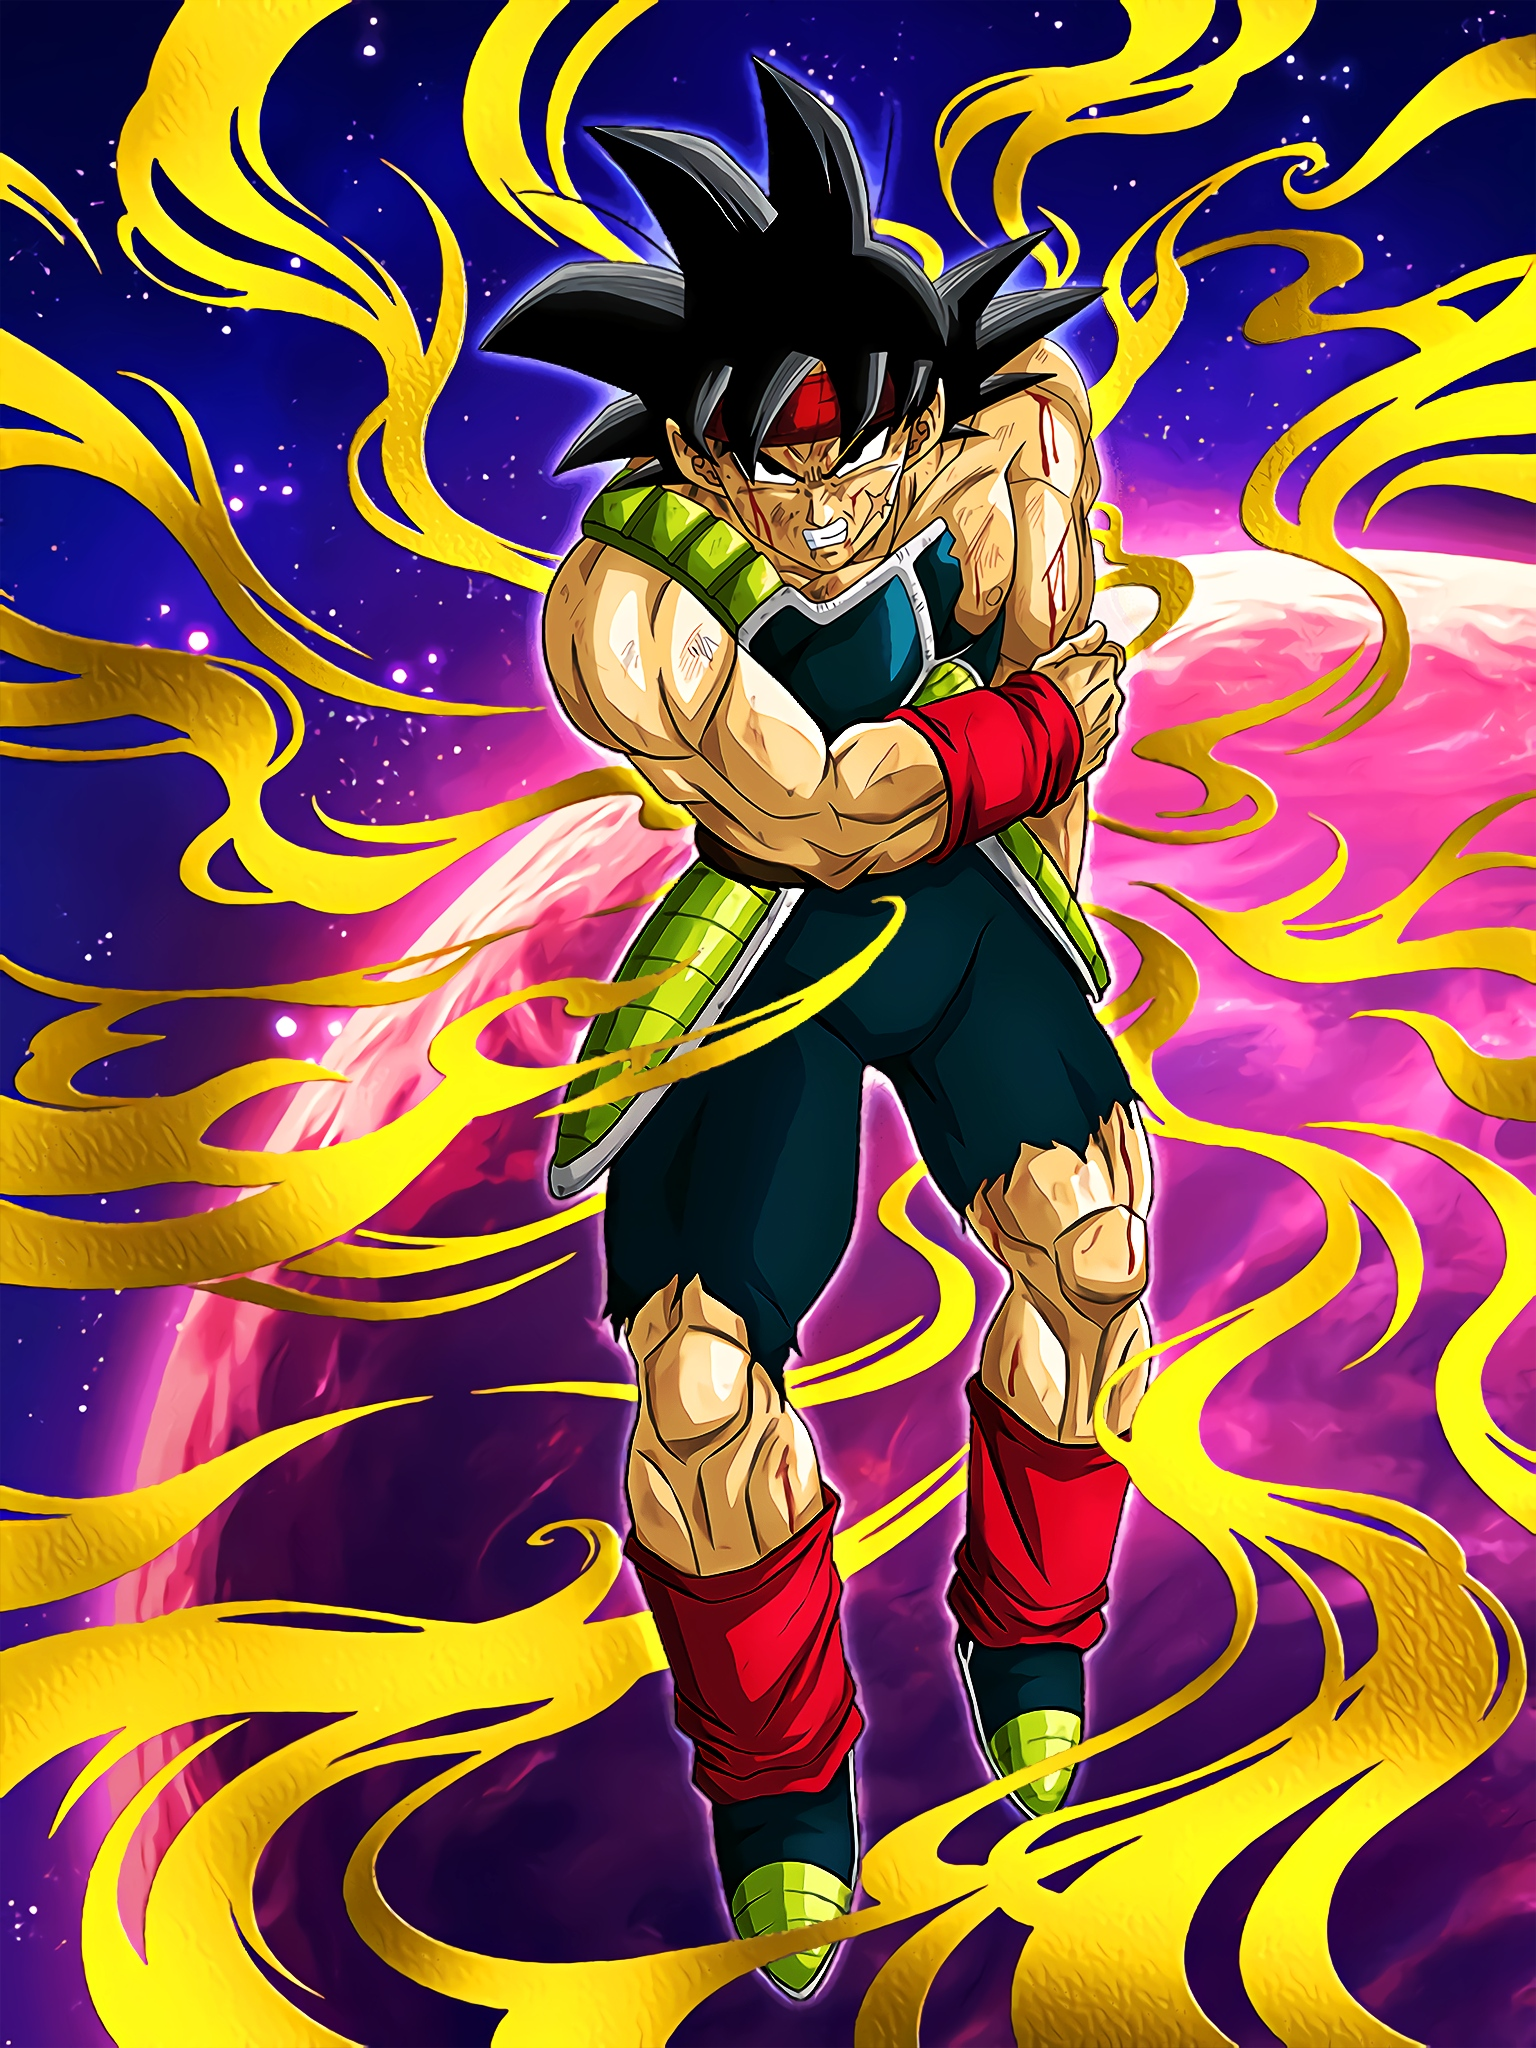 Cursed Future Bardock Art (Dragon Ball Z Dokkan Battle).jpg